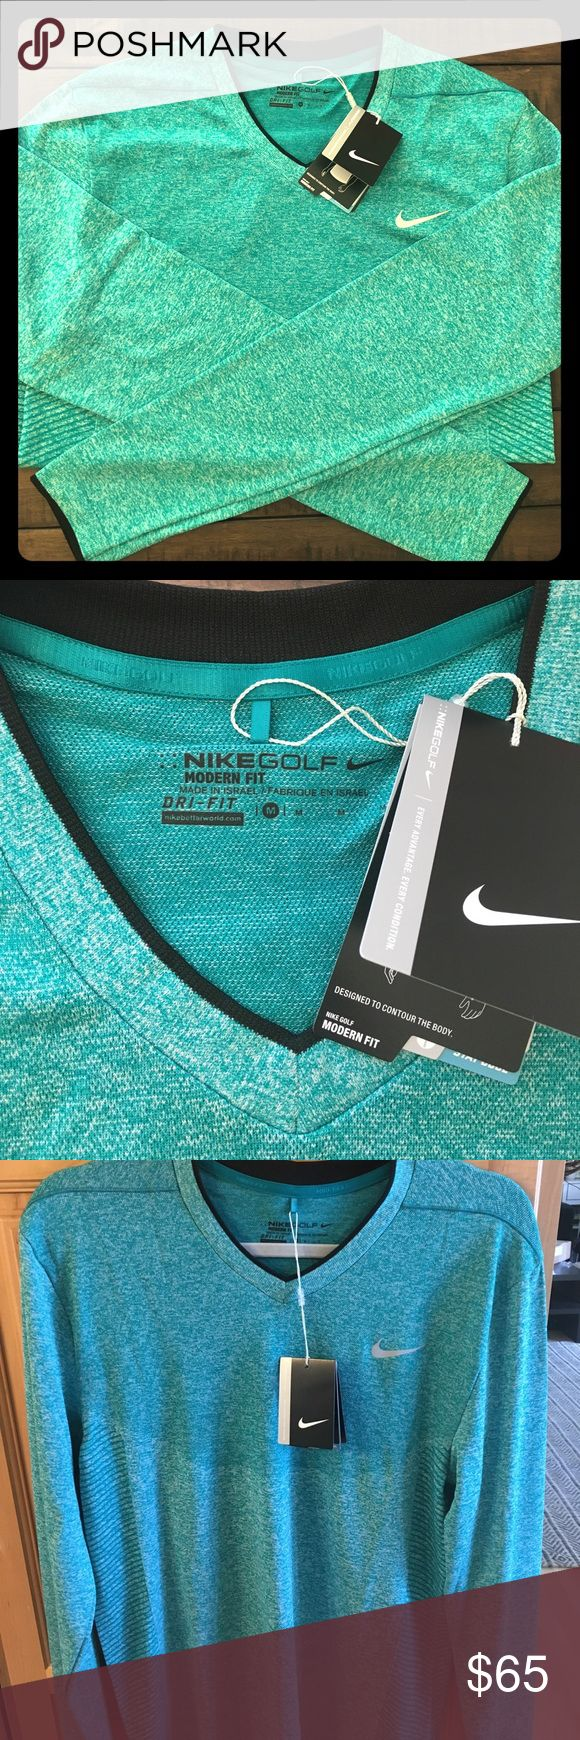 Nike Golf Dri-Fit Long Sleeve Golf shirt Size: Medium Brand new with tags! Nike color code: 351 (camp green). This color is hard to capture but it a brighter green and I would describe as a mix of Teal & Kelly Green. It's a great color! Nike Shirts Tees - Long Sleeve